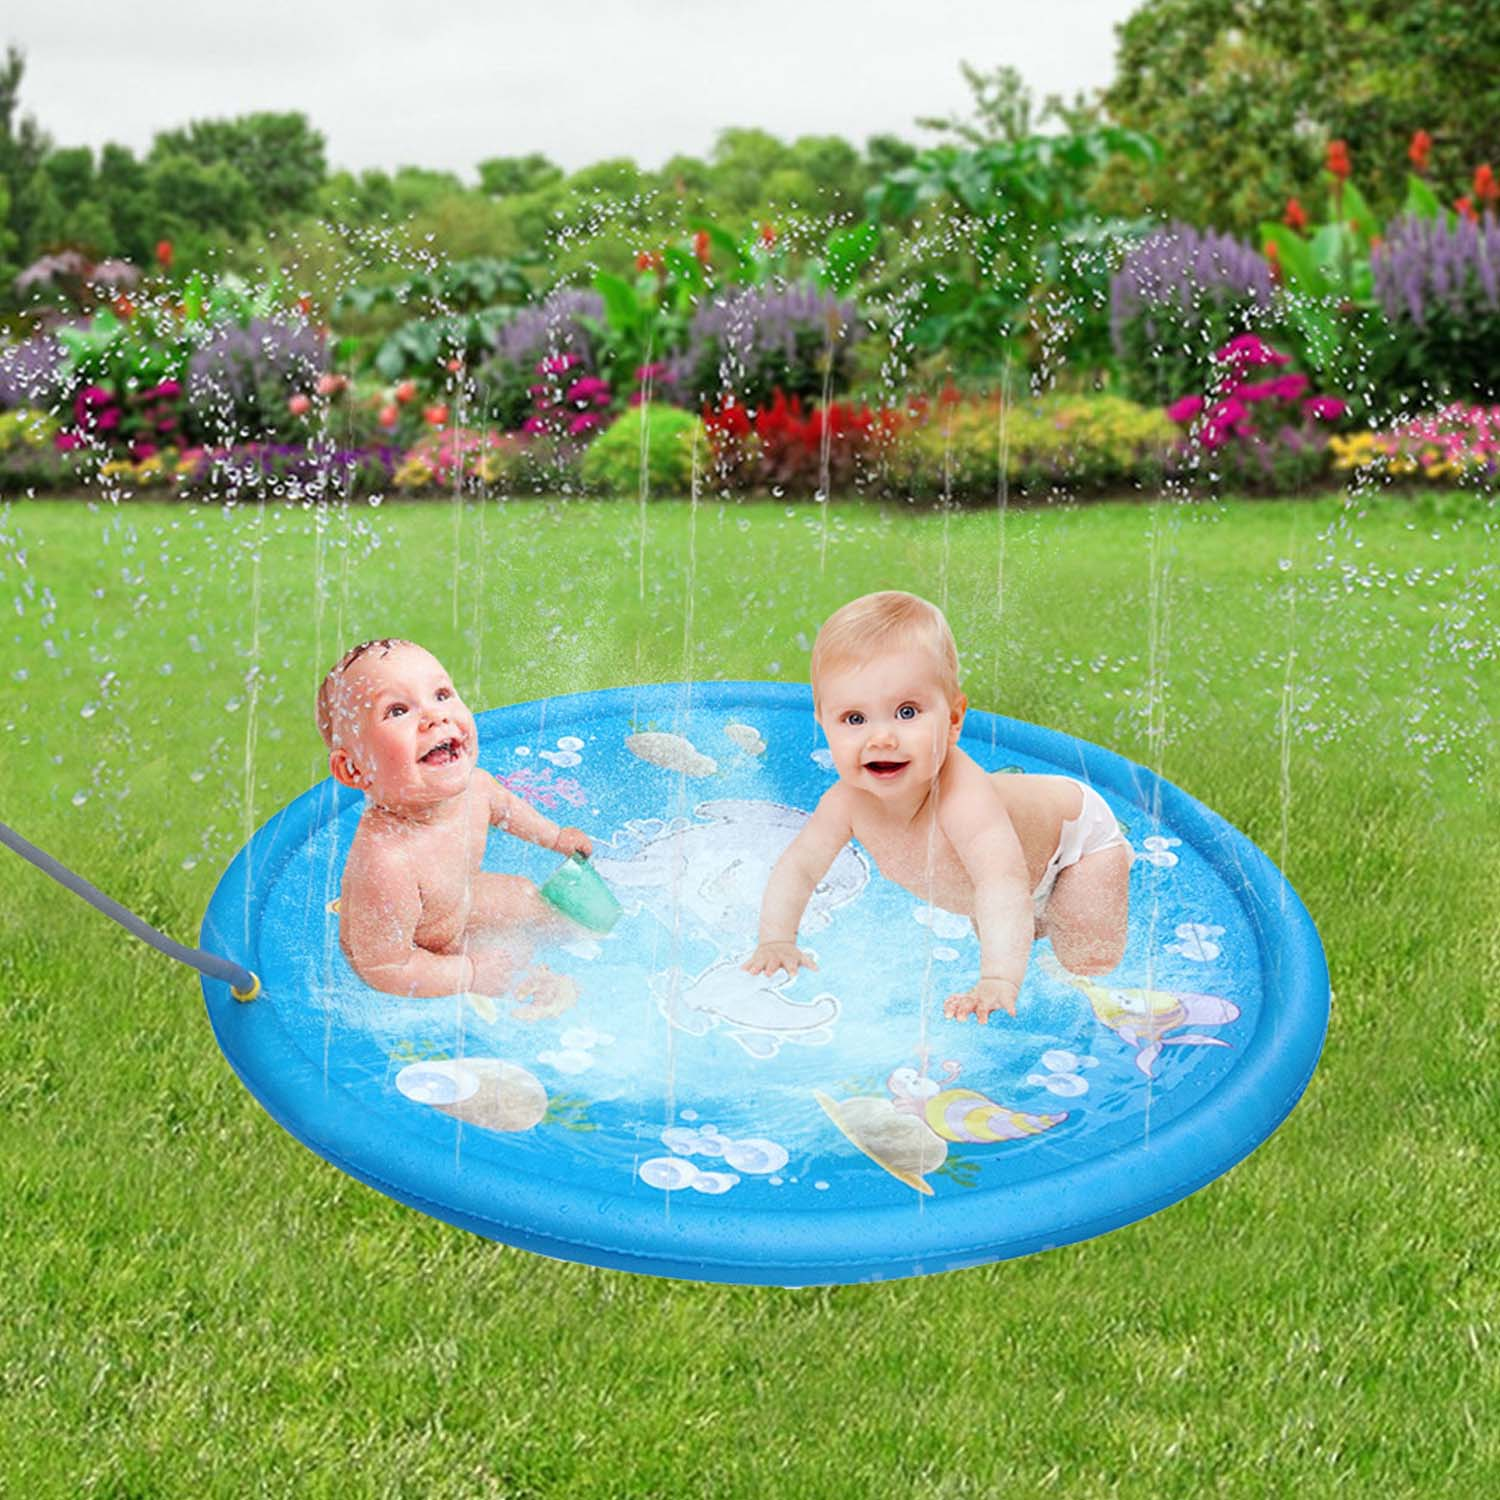 Besegad Inflatable Water Sprinkle Splash Play Mat For Children Summer Lawn Outdoor Sprinkler Toy Dolphin Water Play Mat 170cm